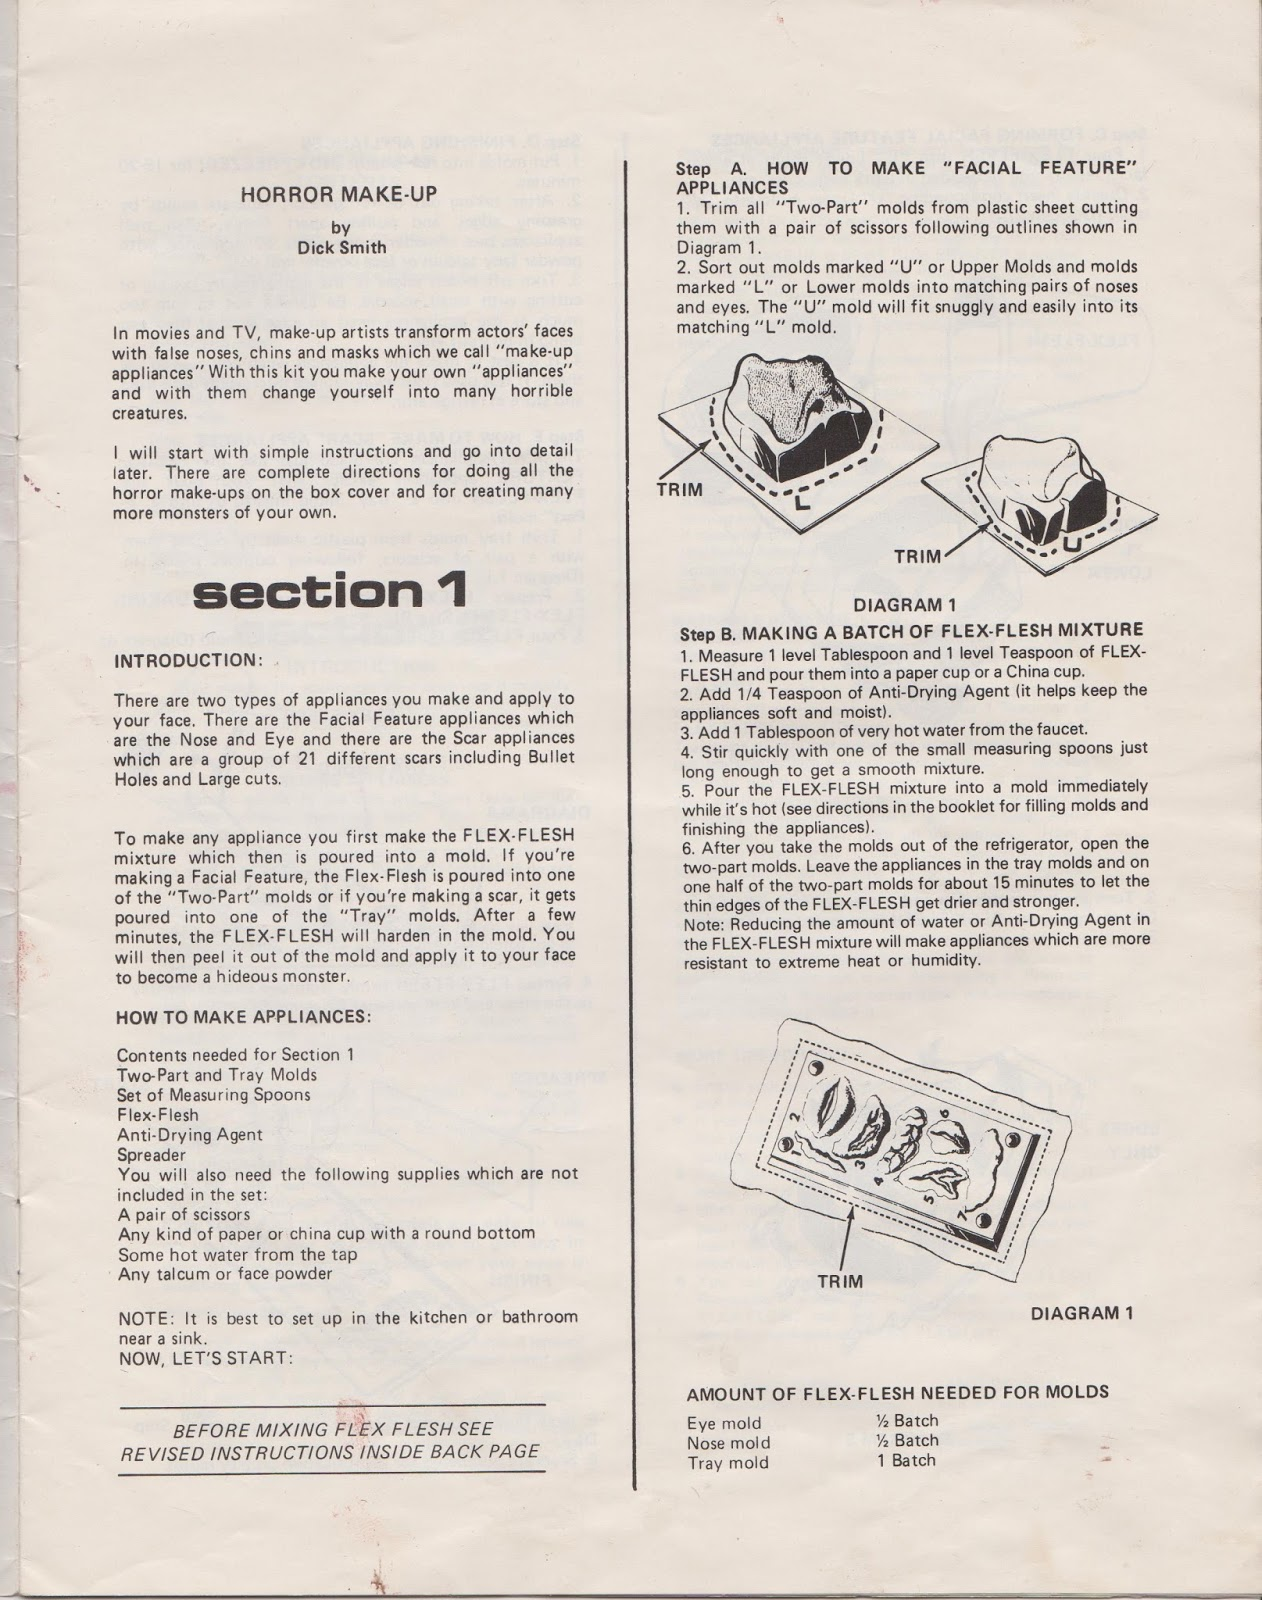 The cobwebbed room dekker horror make up kit instruction manual well here it is hope that it will be useful enough would be interesting in seeing what the make up you choose looks like solutioingenieria Image collections